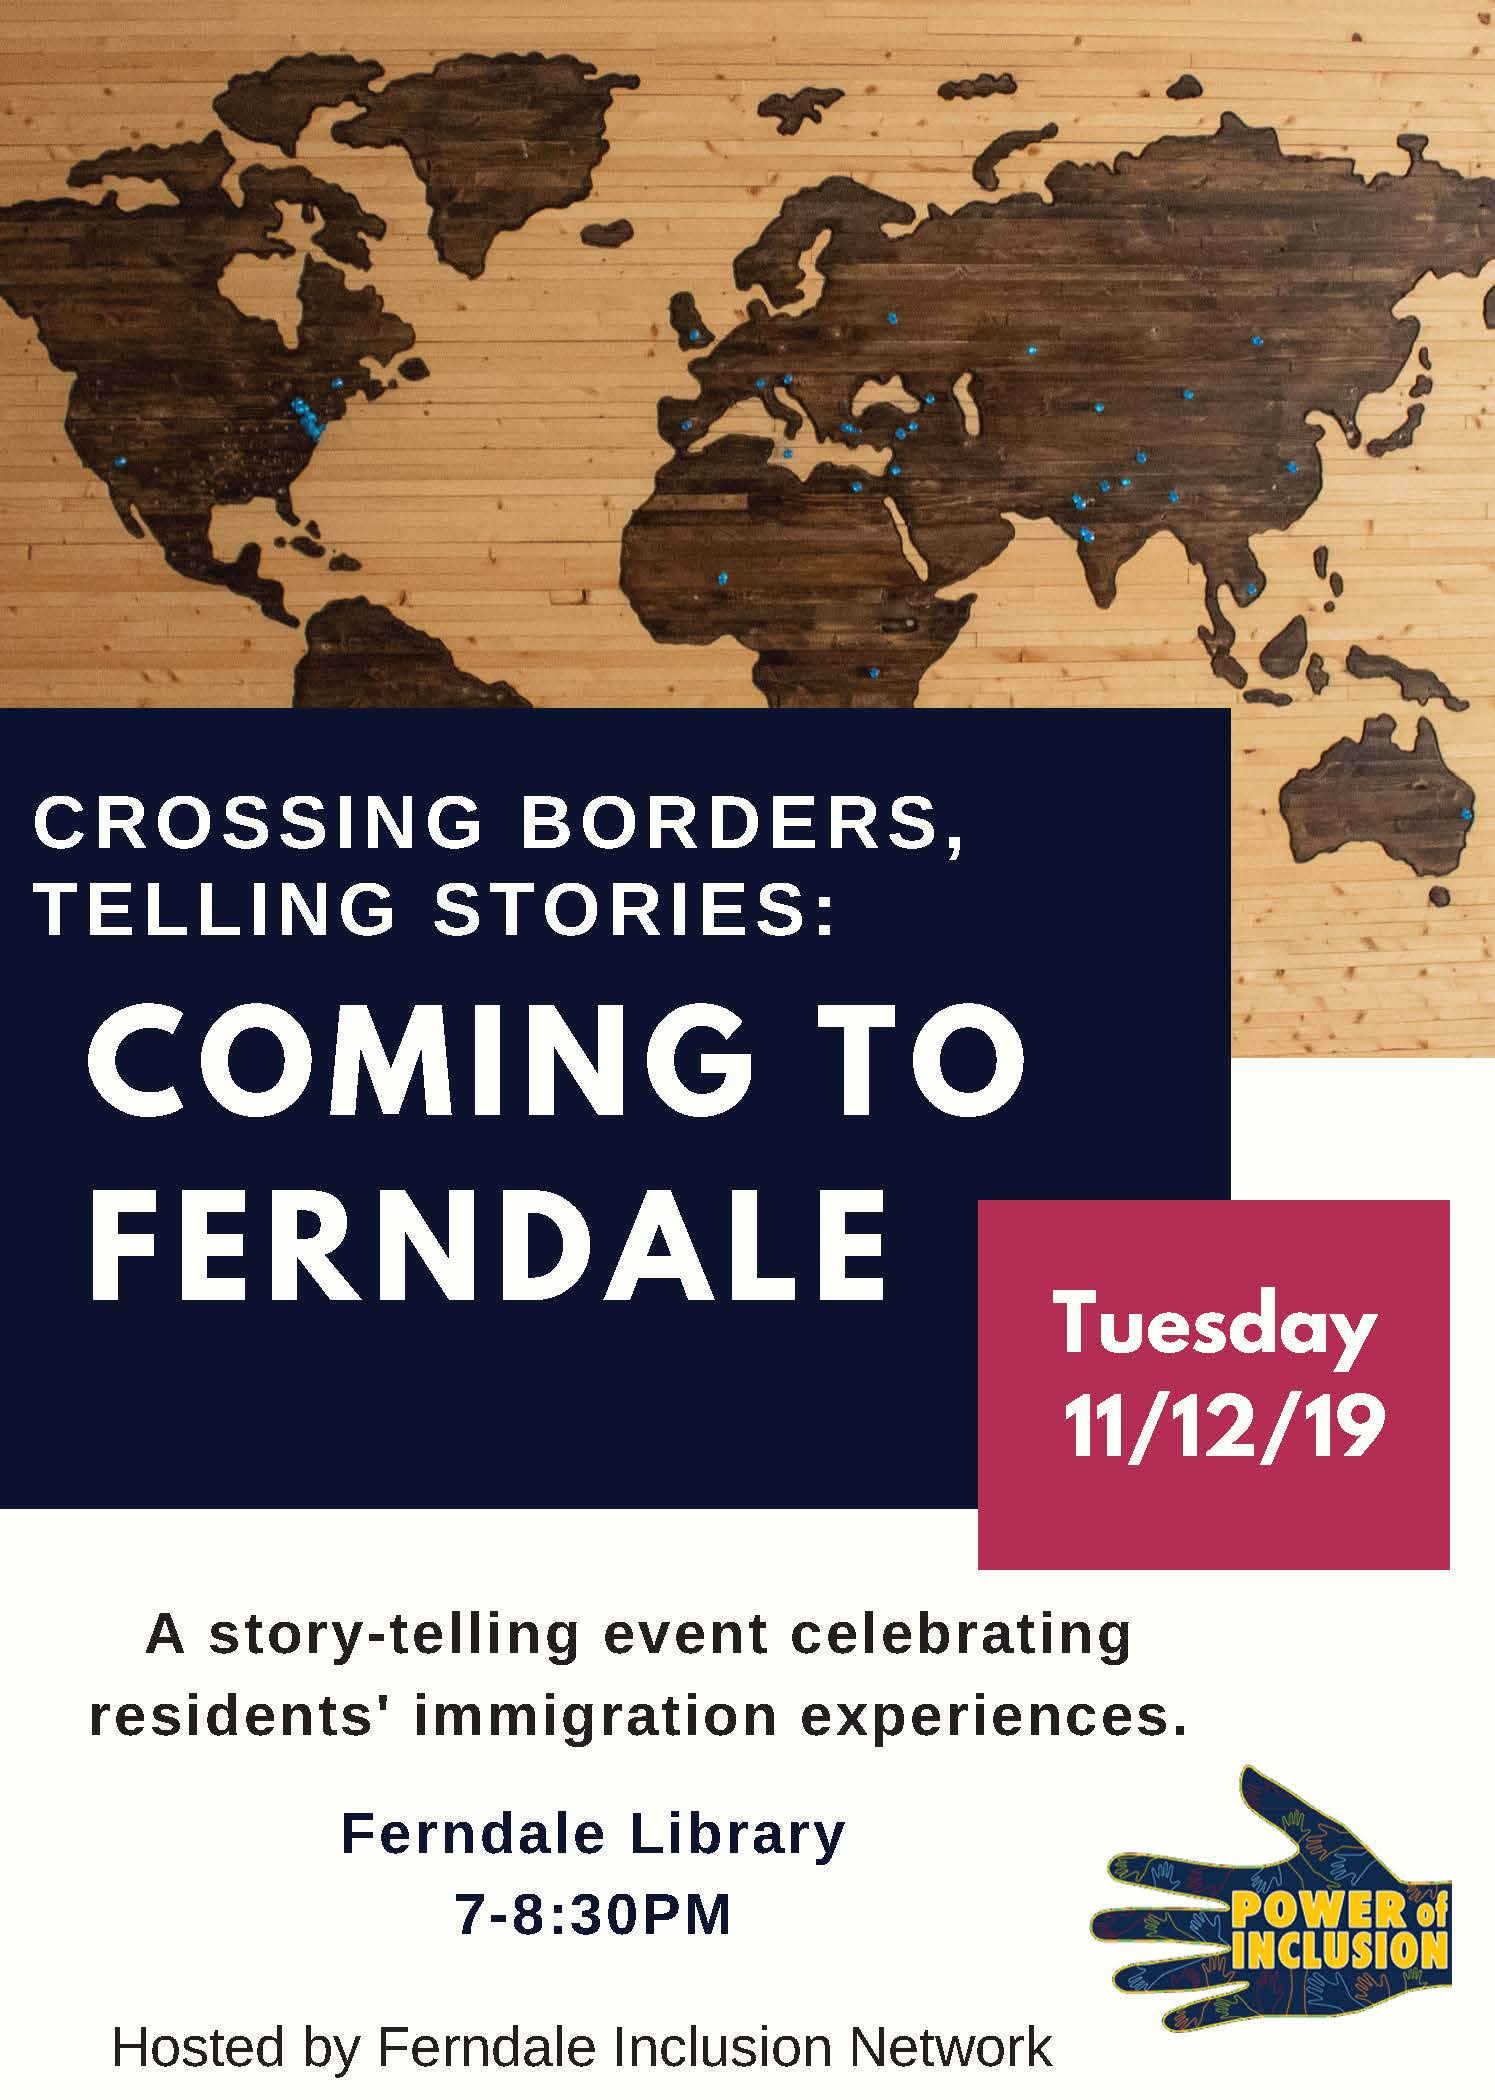 Crossing Borders, Telling Stories: Coming to Ferndale